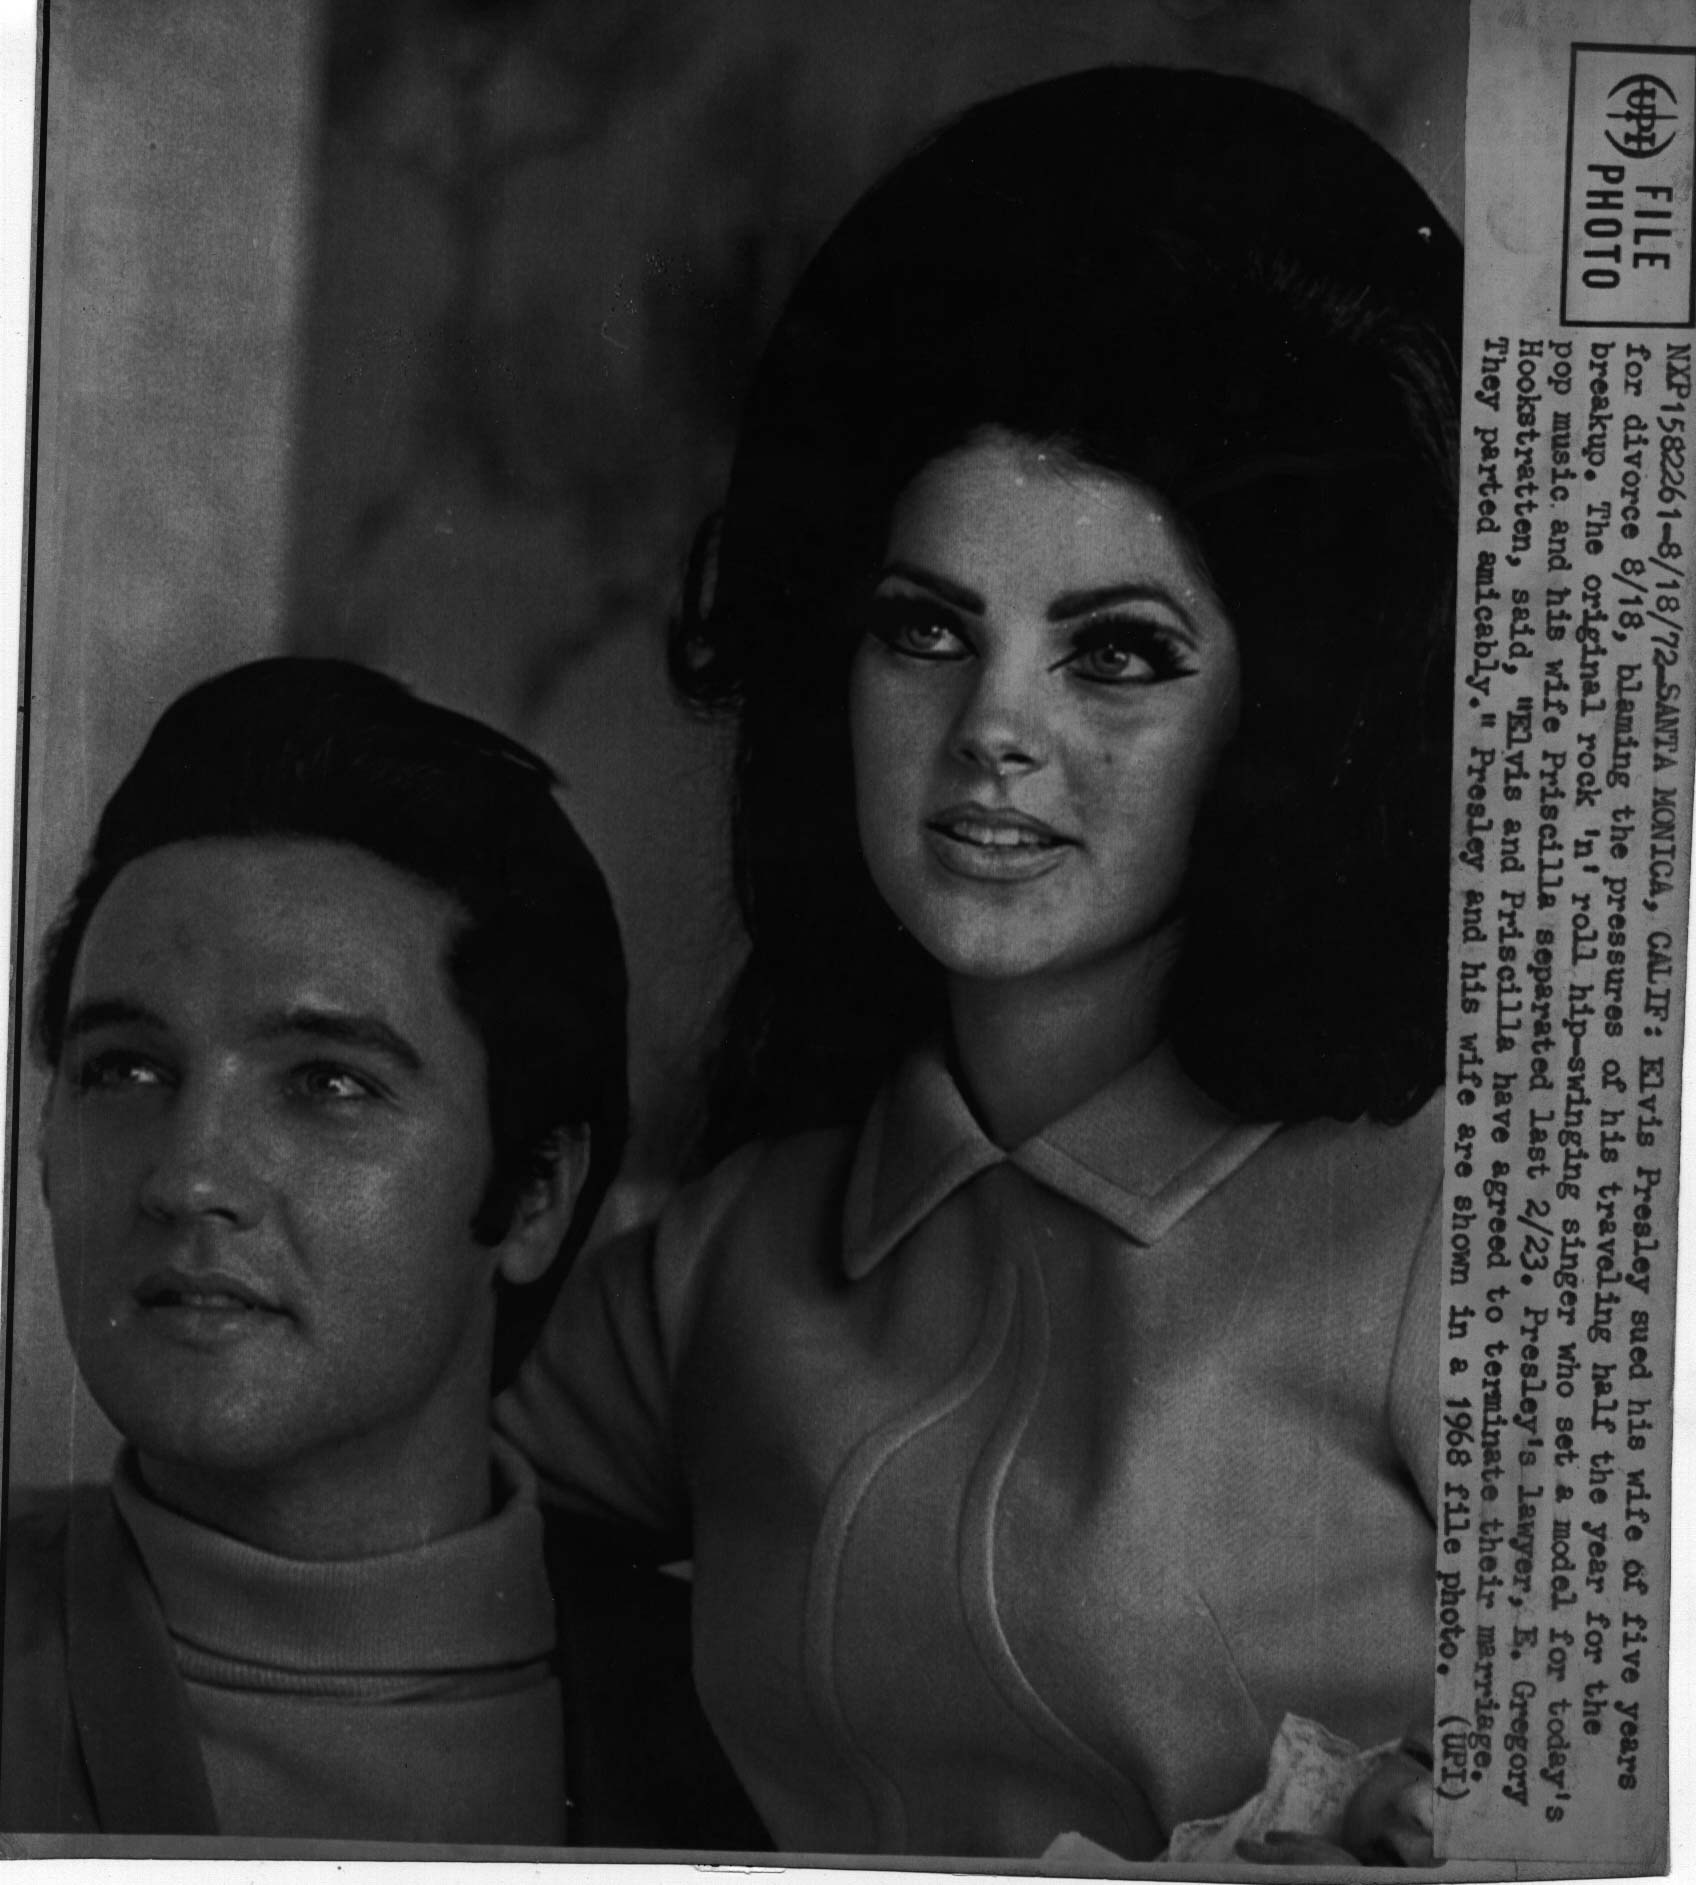 Pictures: Cruise ship godmothers - Priscilla Presley